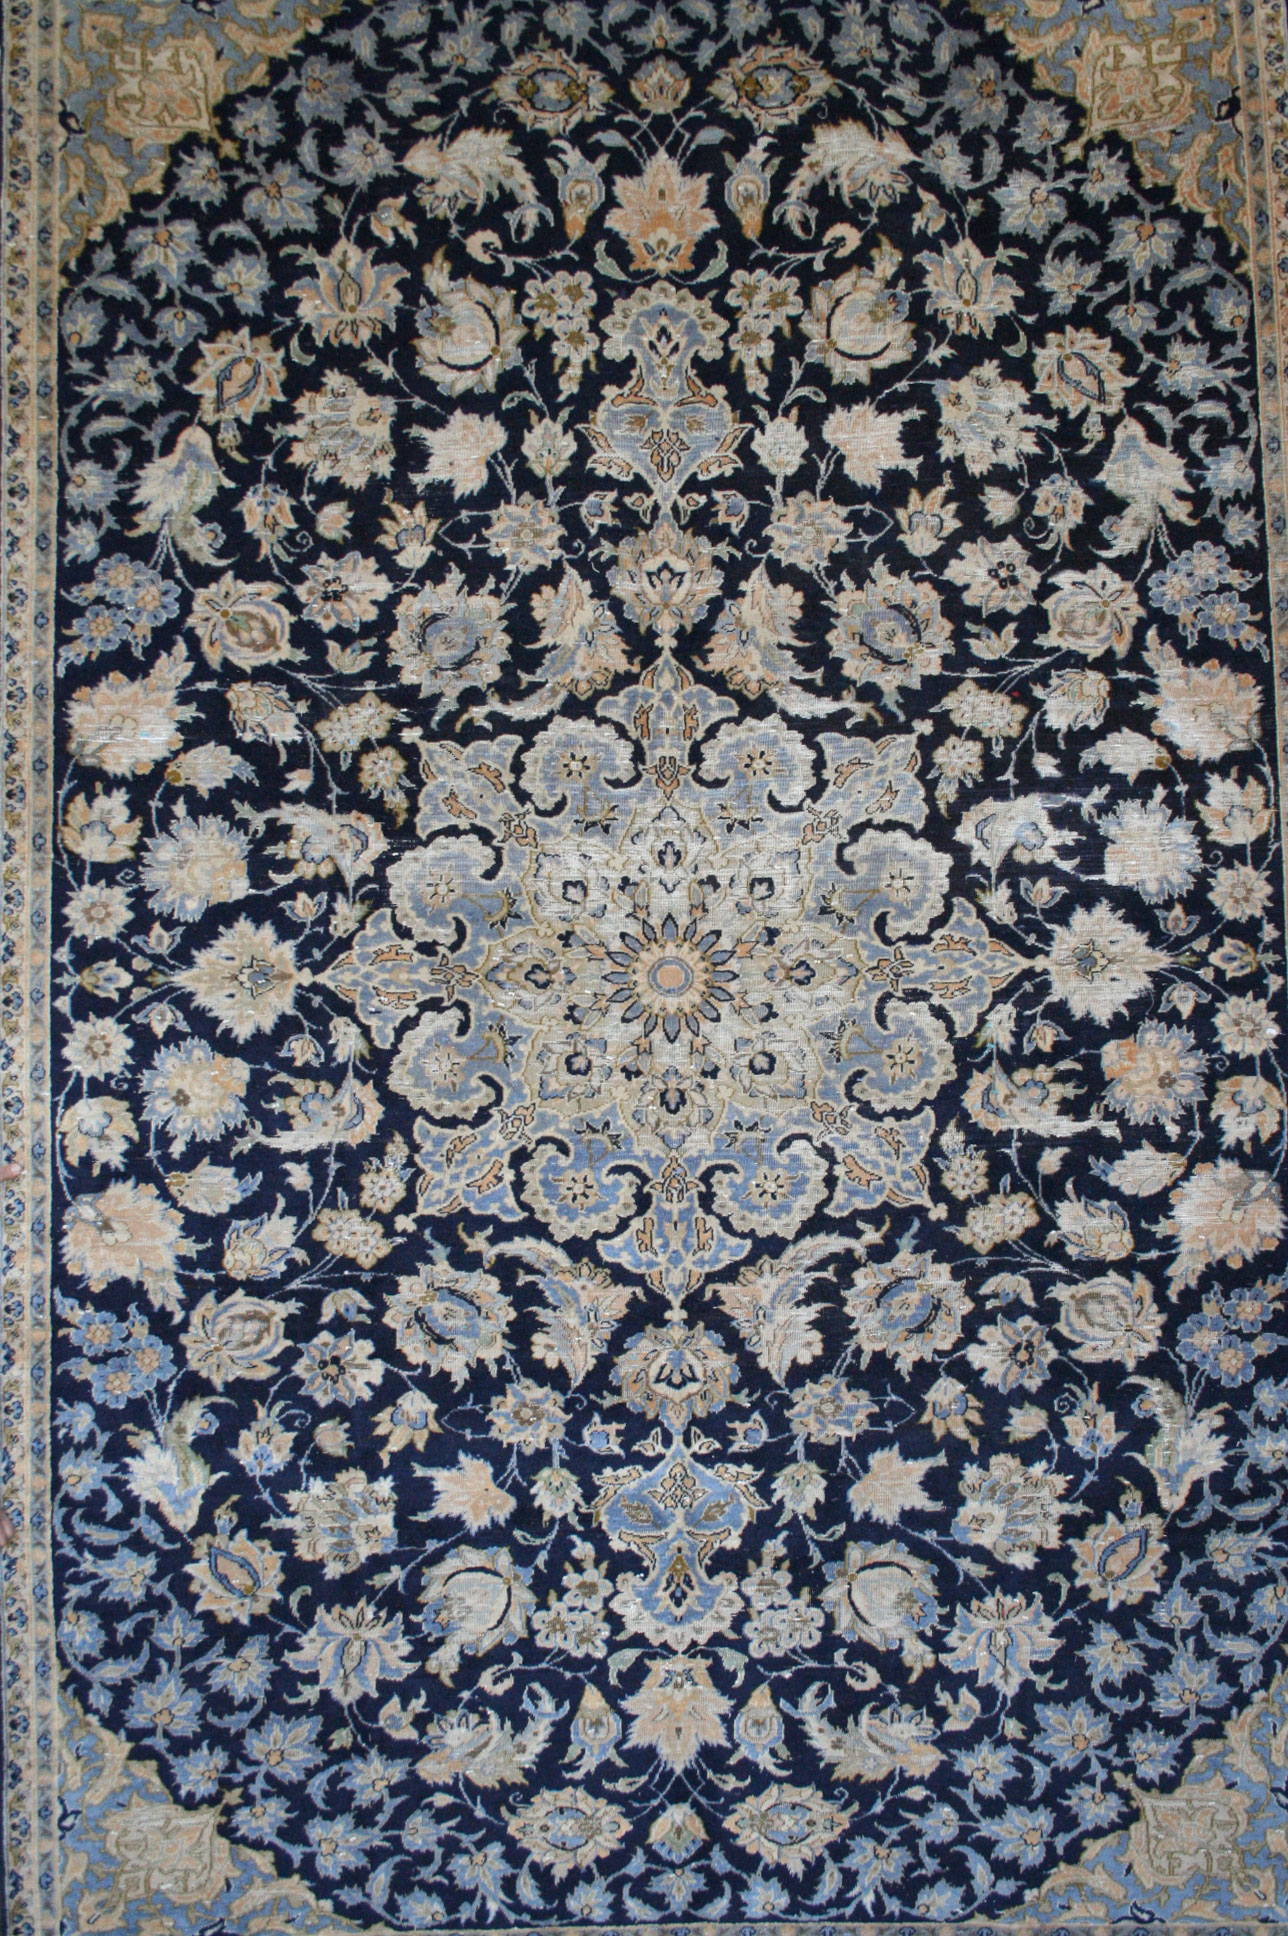 NEW ORIGINAL 100% WOOL PILE FLOKATI FLOOR RUG 240X300cm | eBay